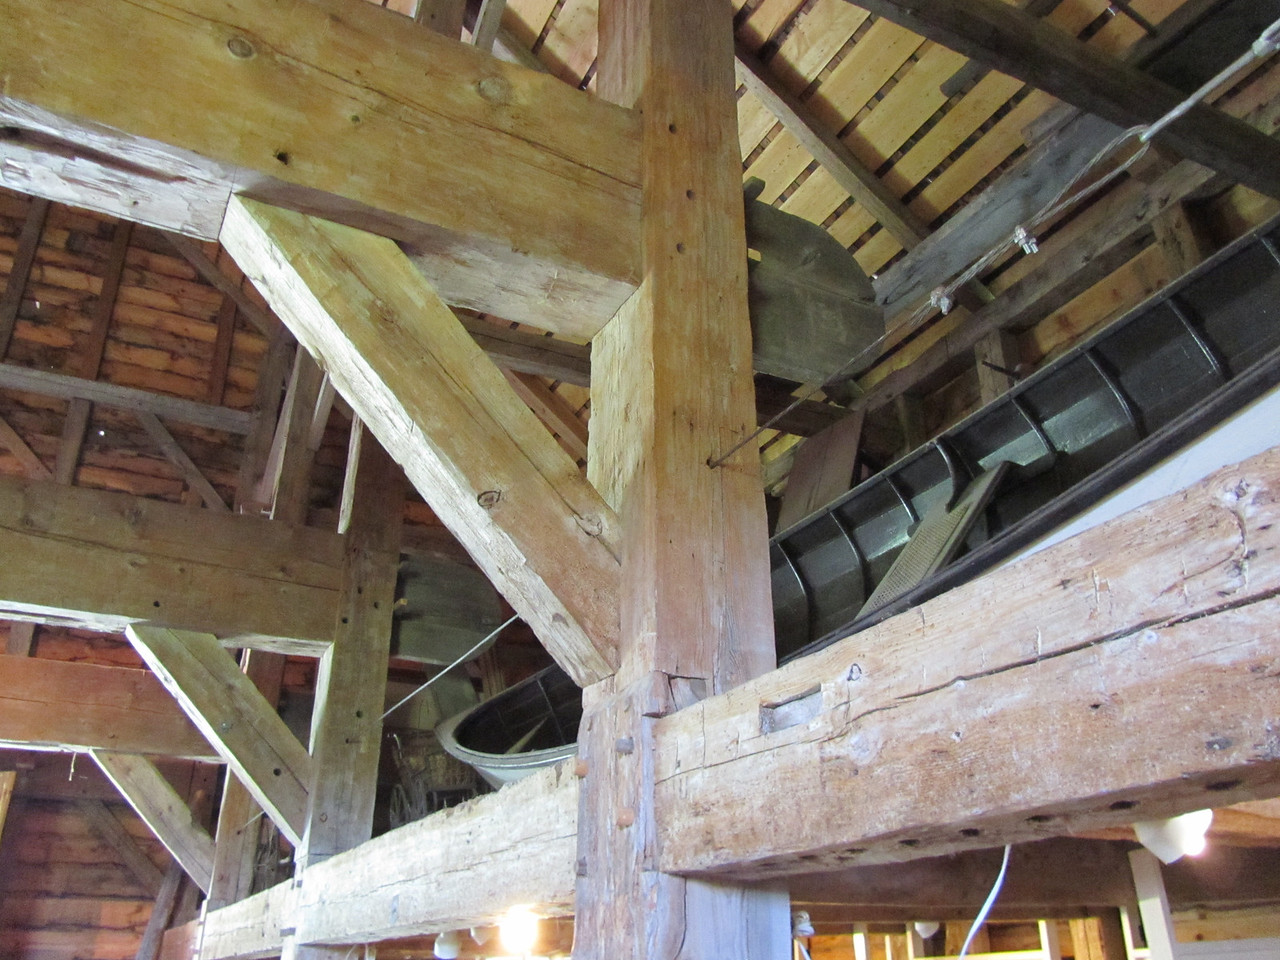 More post and beam building with dowels ilo nails.